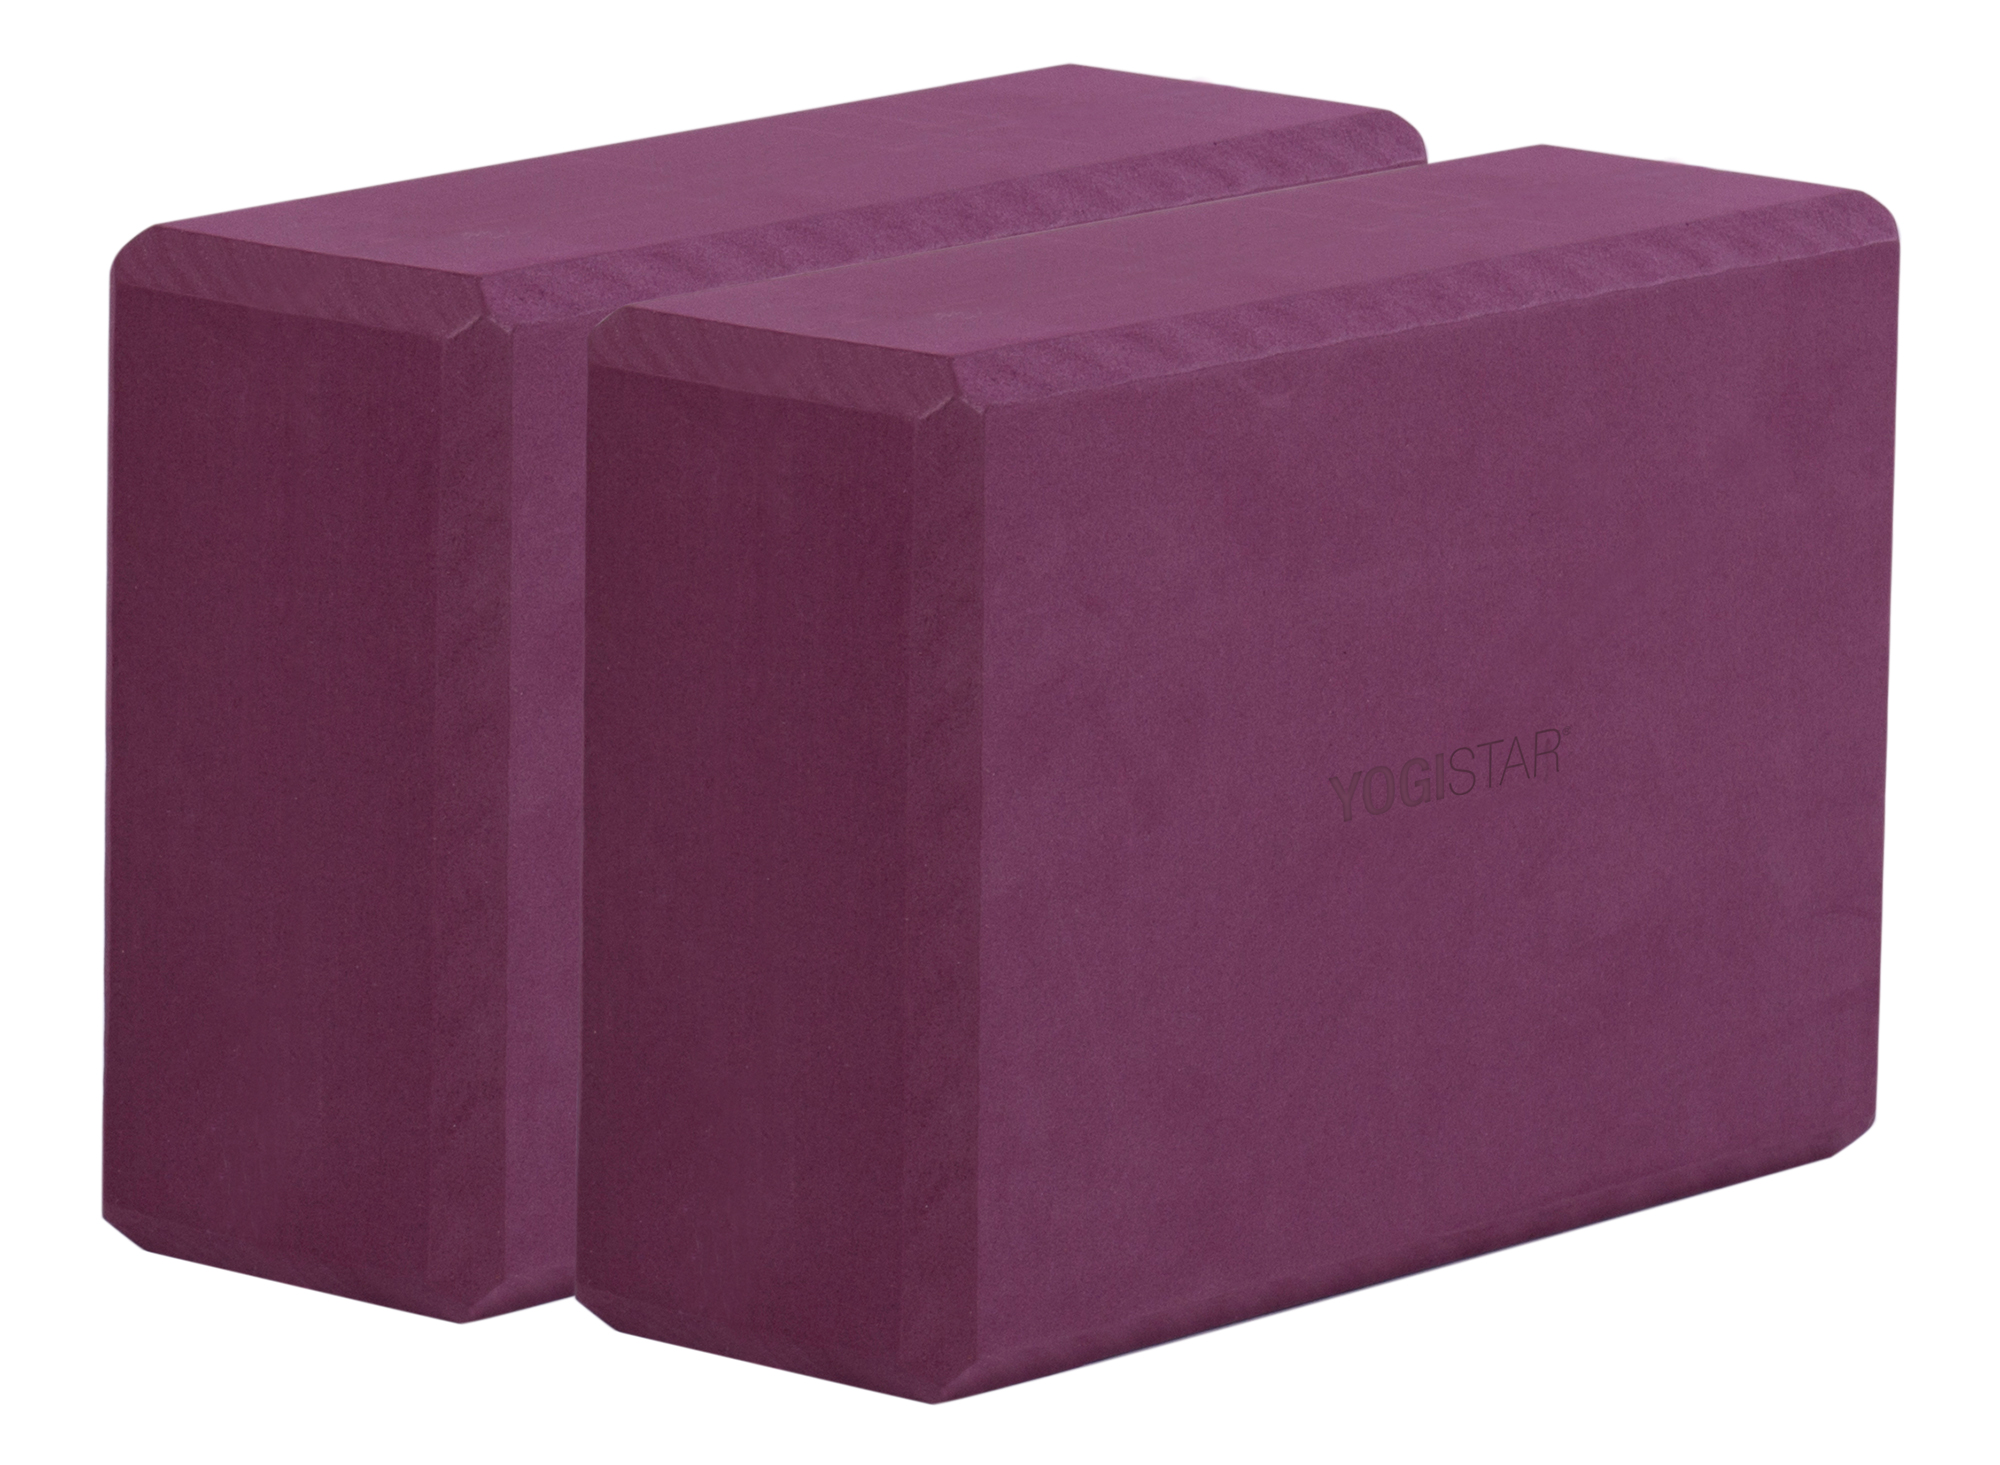 Yogablock - yogiblock big set of 2